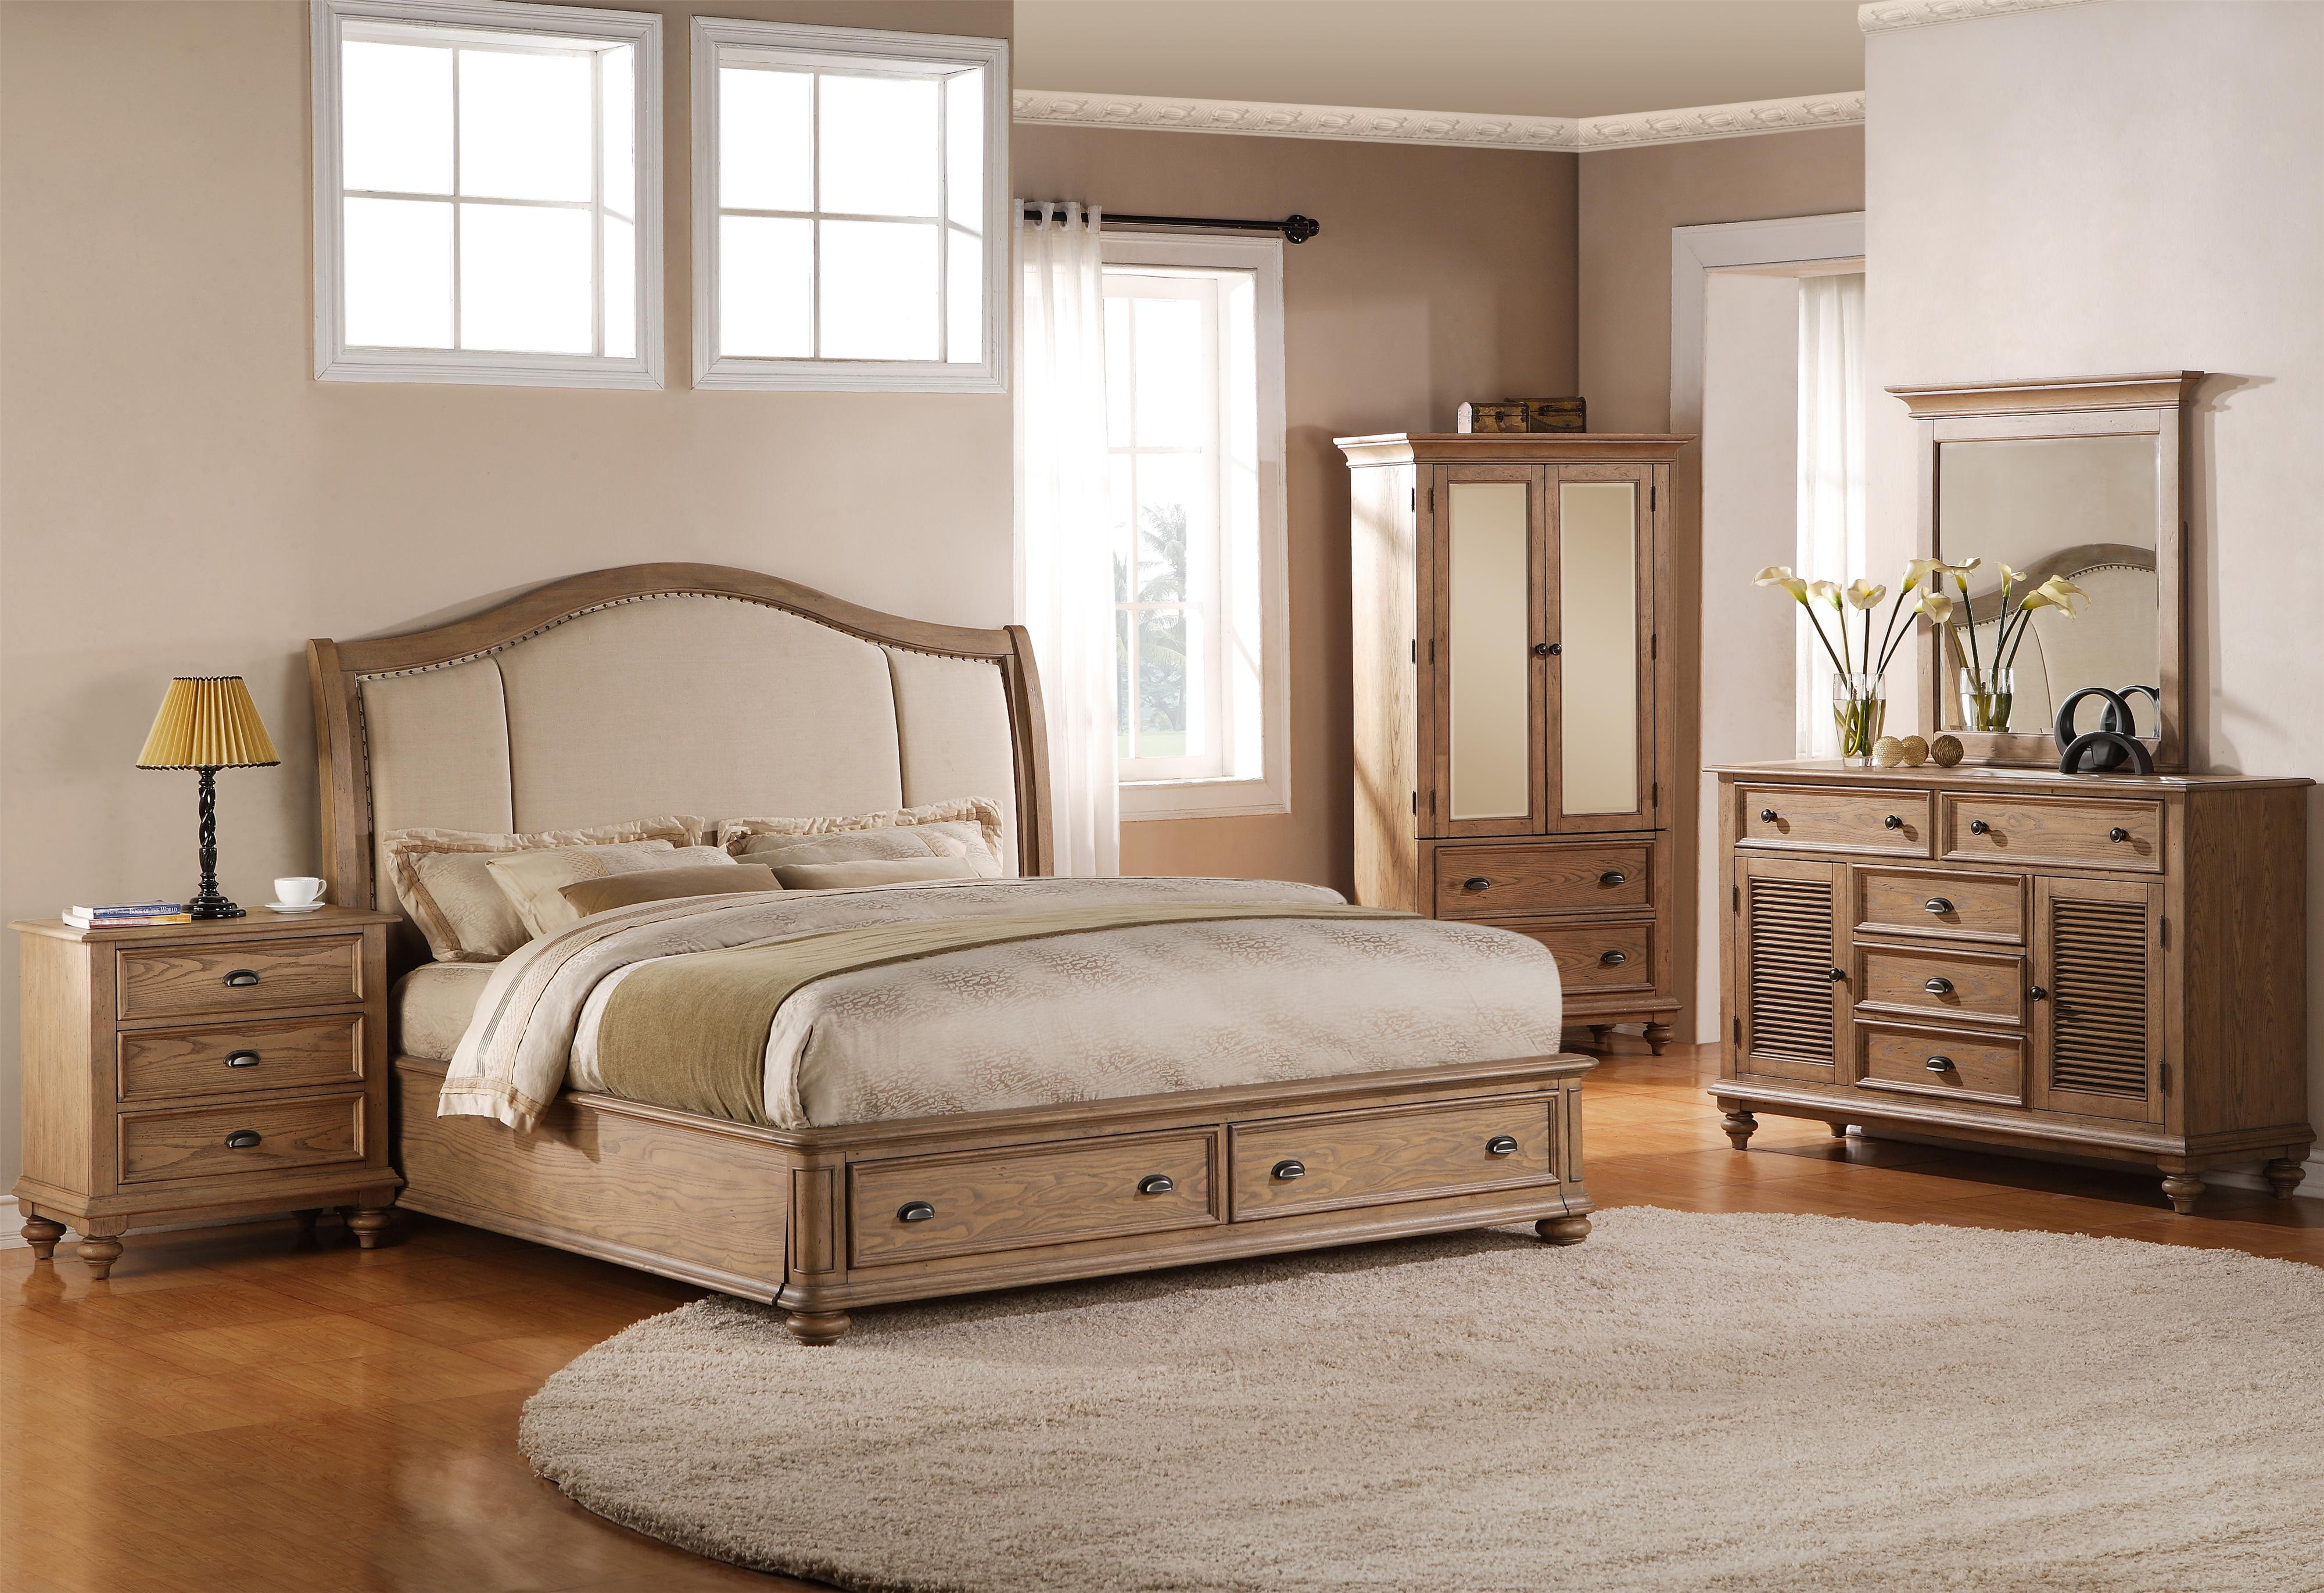 Riverside Furniture Coventry King Bedroom Group - Item Number: 32400 K Bedroom Group 8